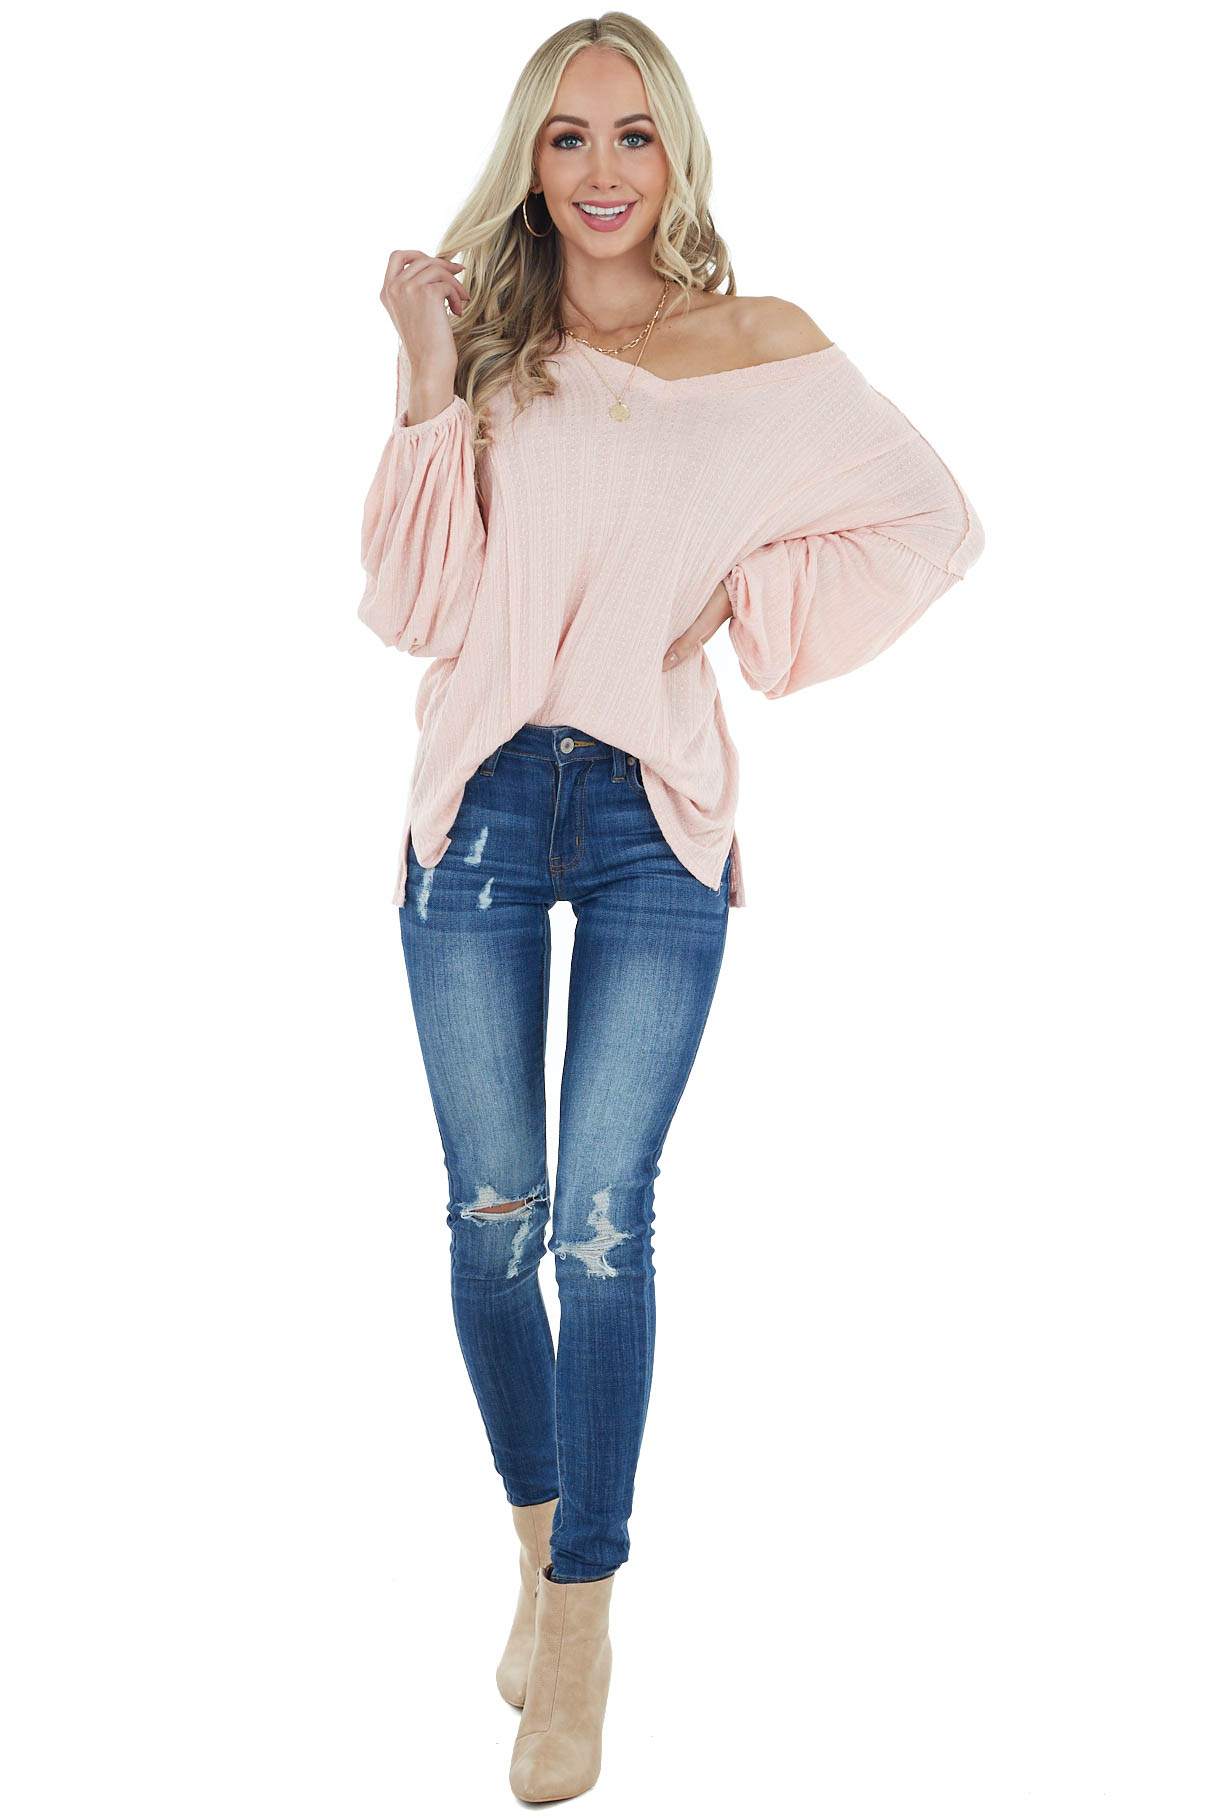 Blush Textured Long Bubble Sleeve Top with Raw Edge Details